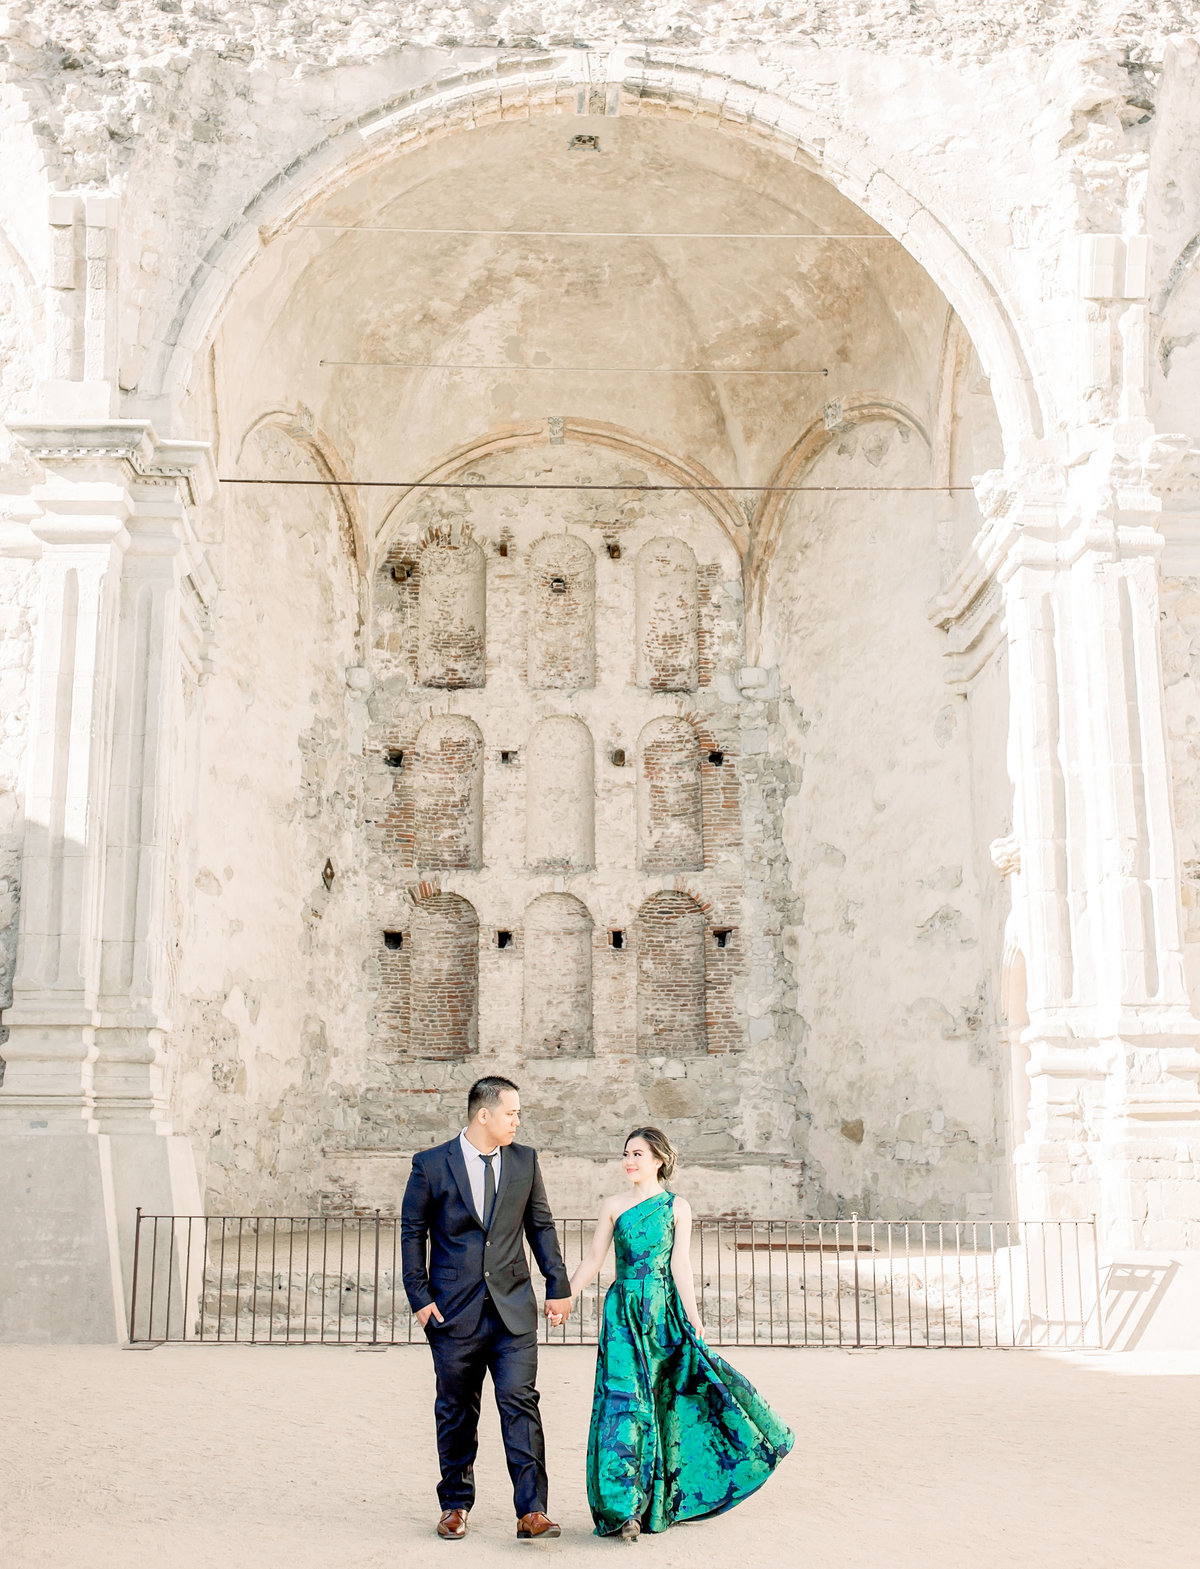 Babsie-Ly-Photography-San-Juan-Capistrano-Missions-Engagement-Session-Asian-Photographer-012